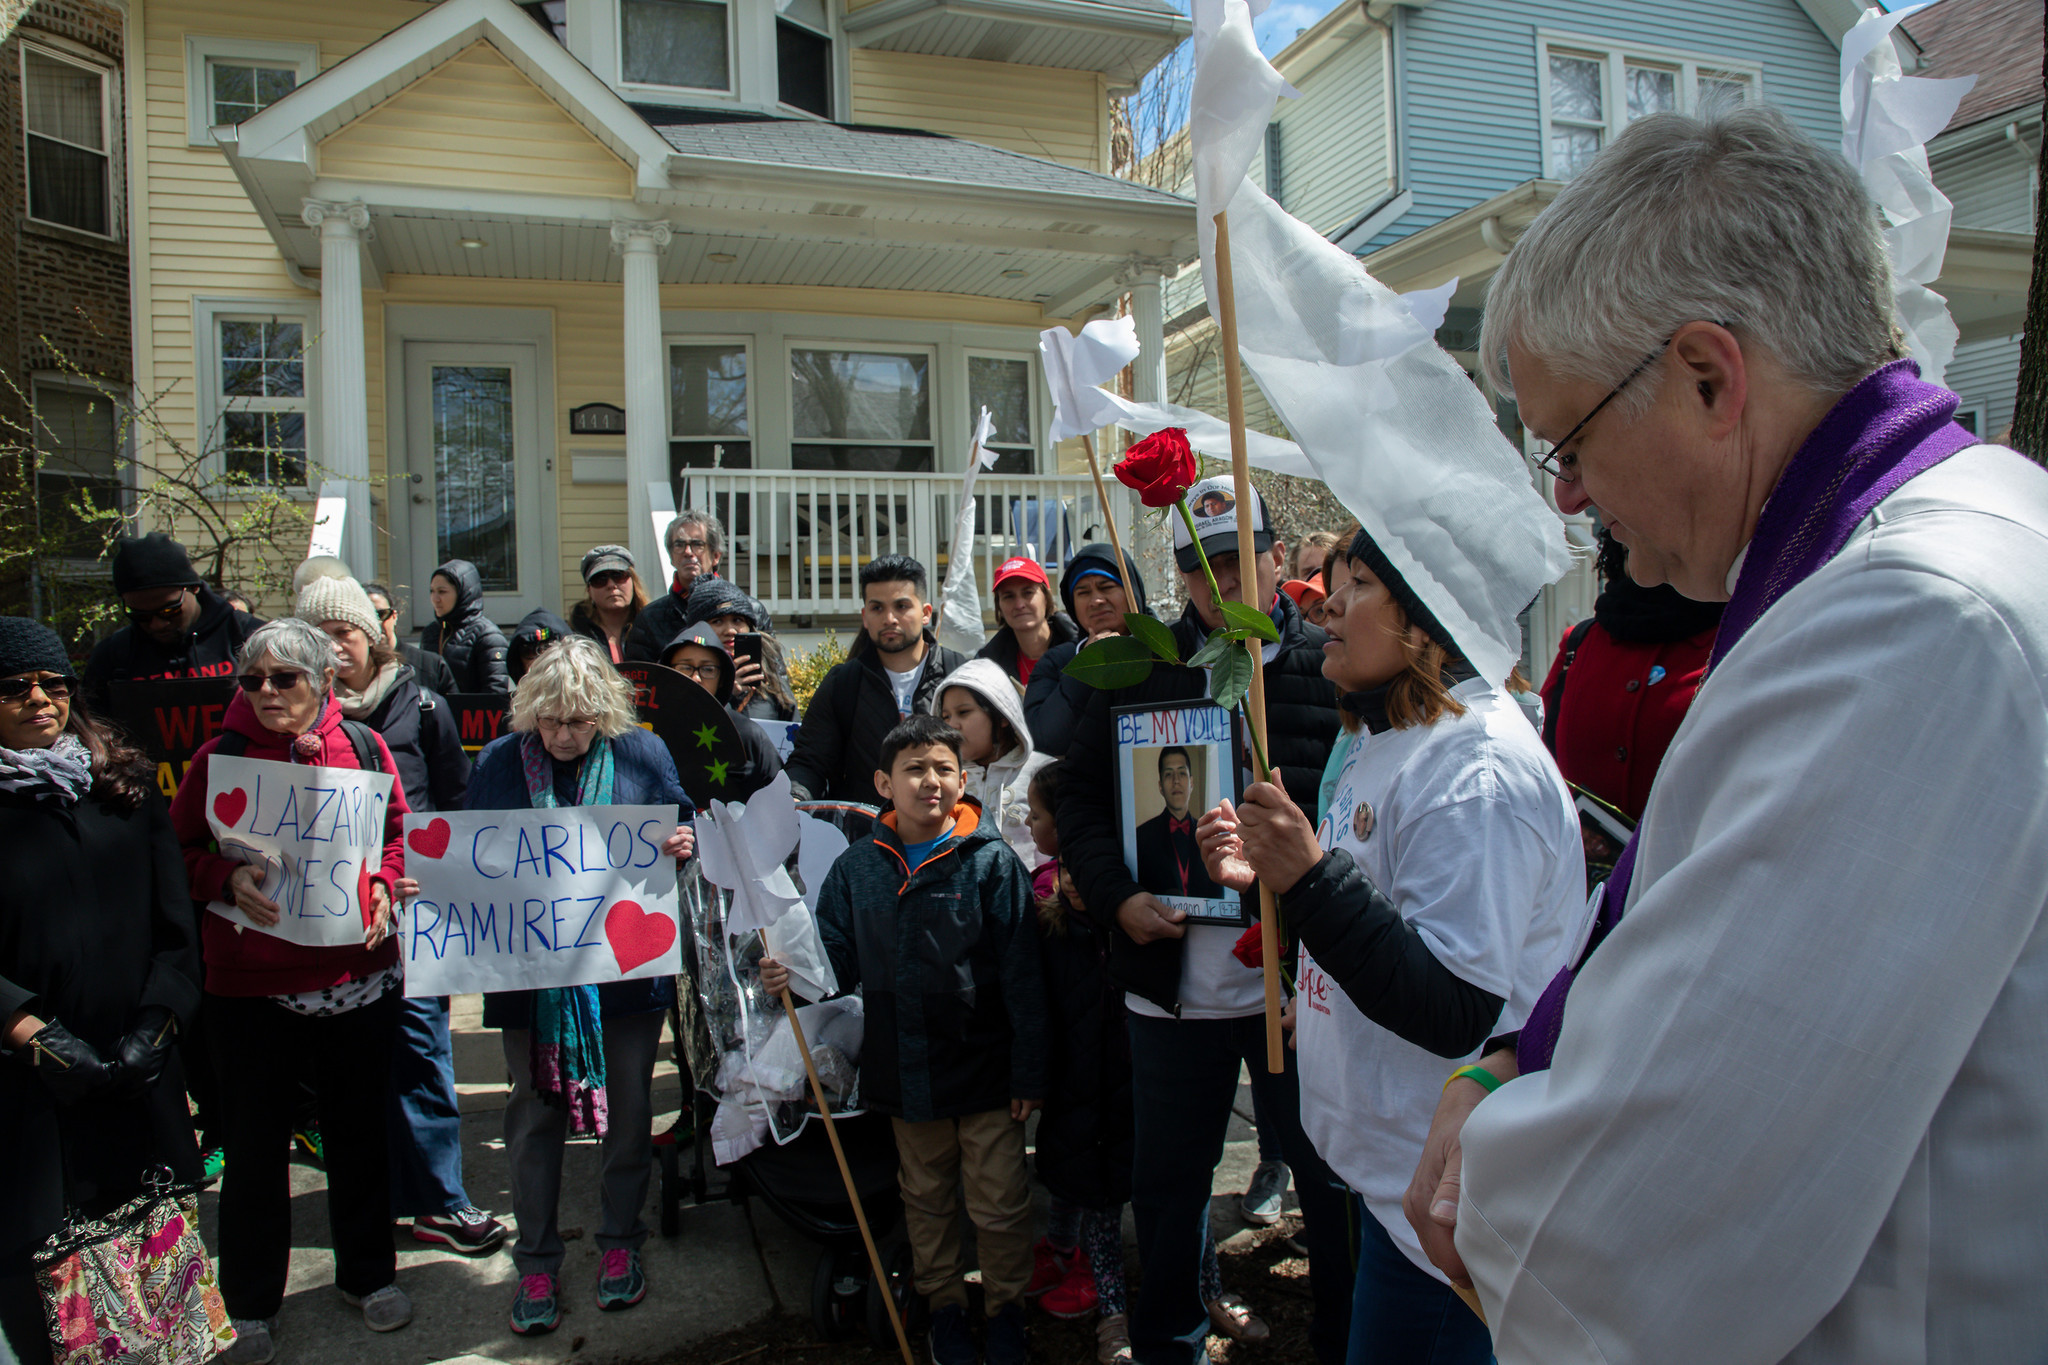 'Where he took his last breath': Walk for peace honors victims of violence where they died in Albany Park